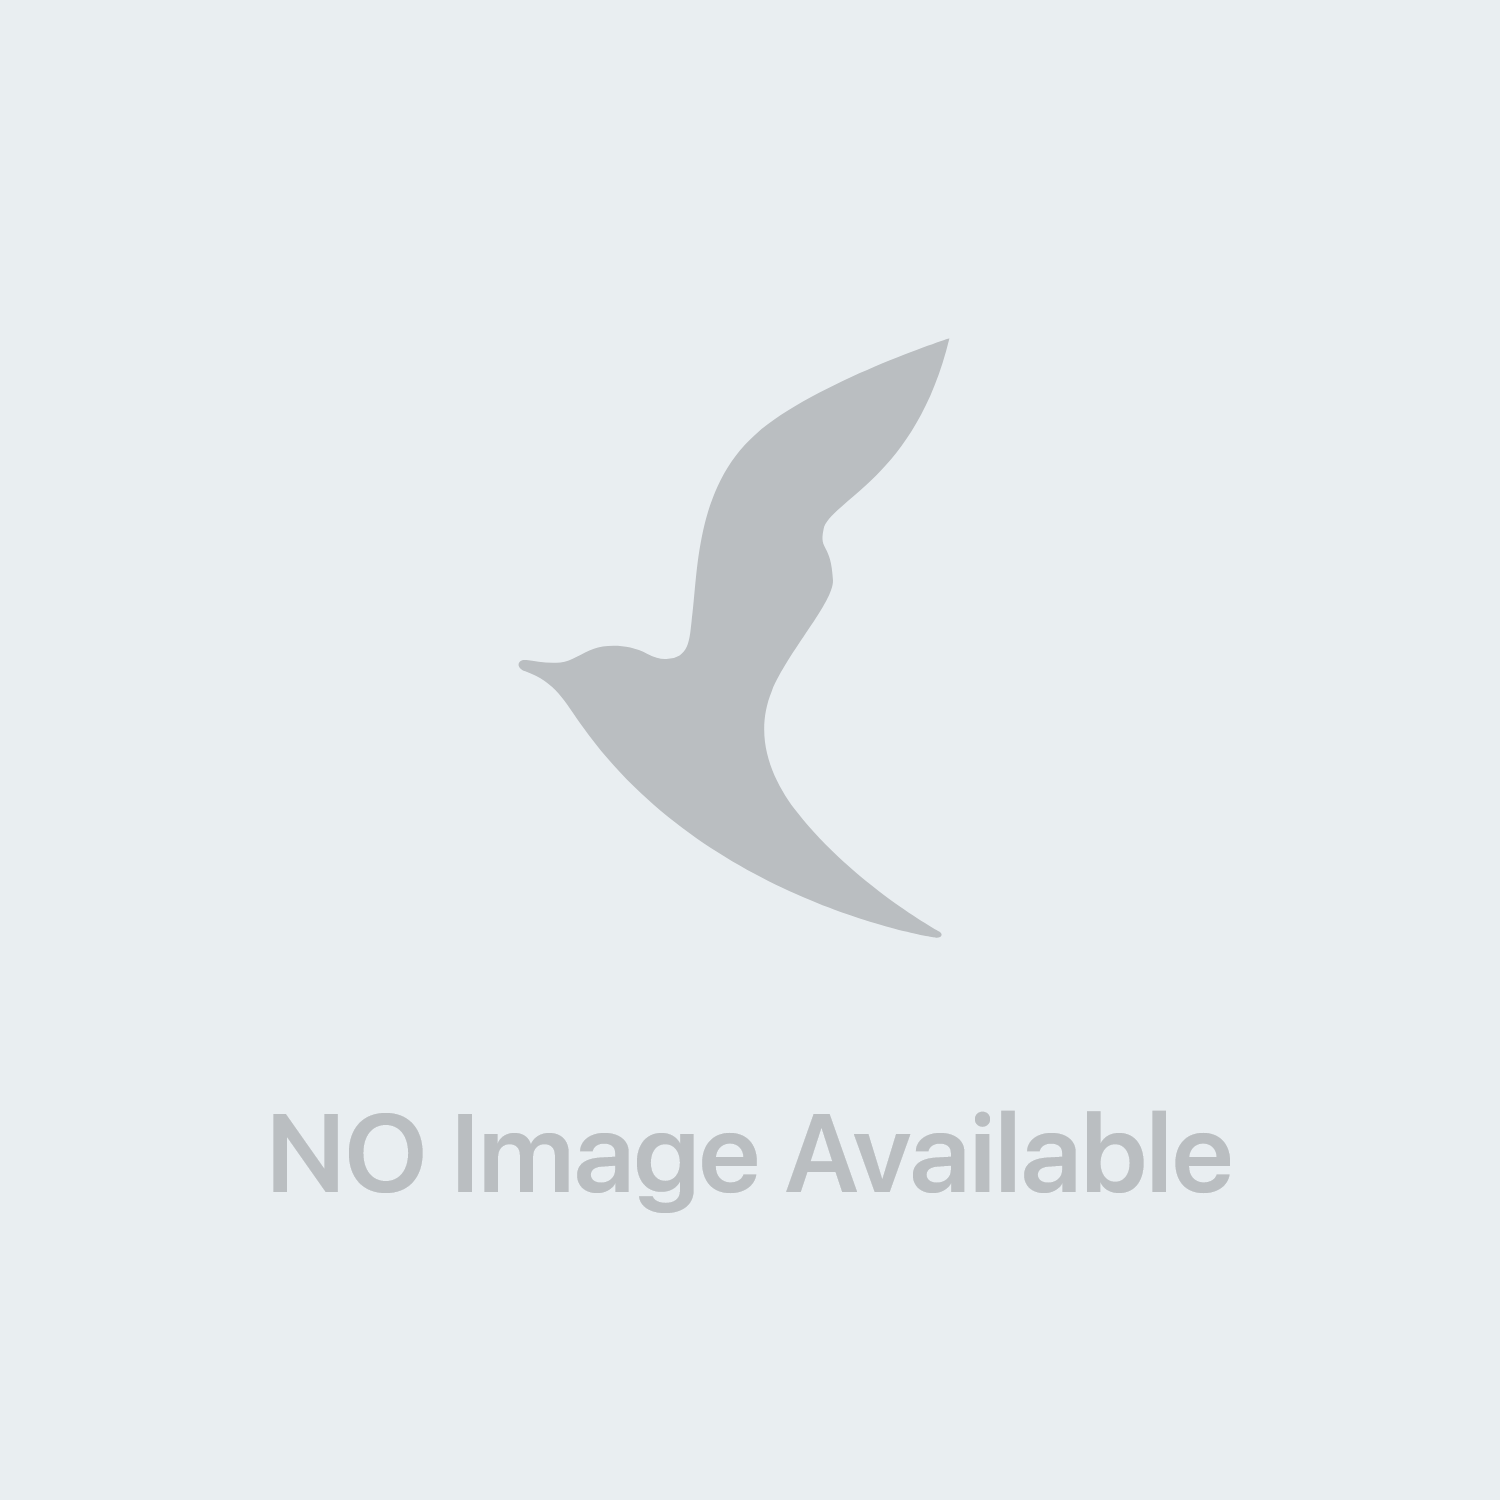 Veet Natural Ispirations Crema Depilatoria con Olio di Semi d'Uva 200 ml